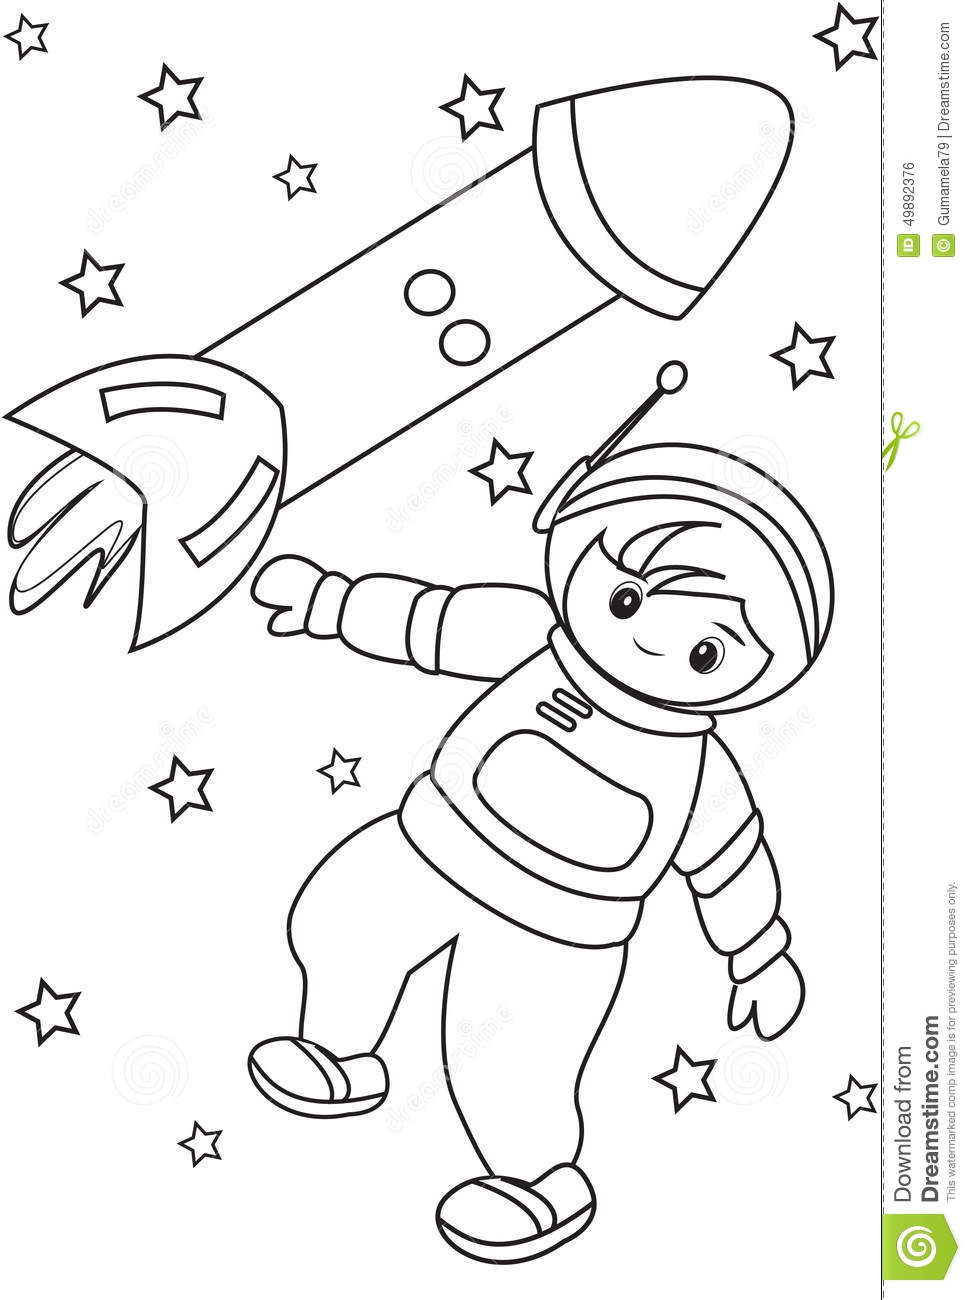 Astronaut In Space Coloring Page Useful As Book For Kids